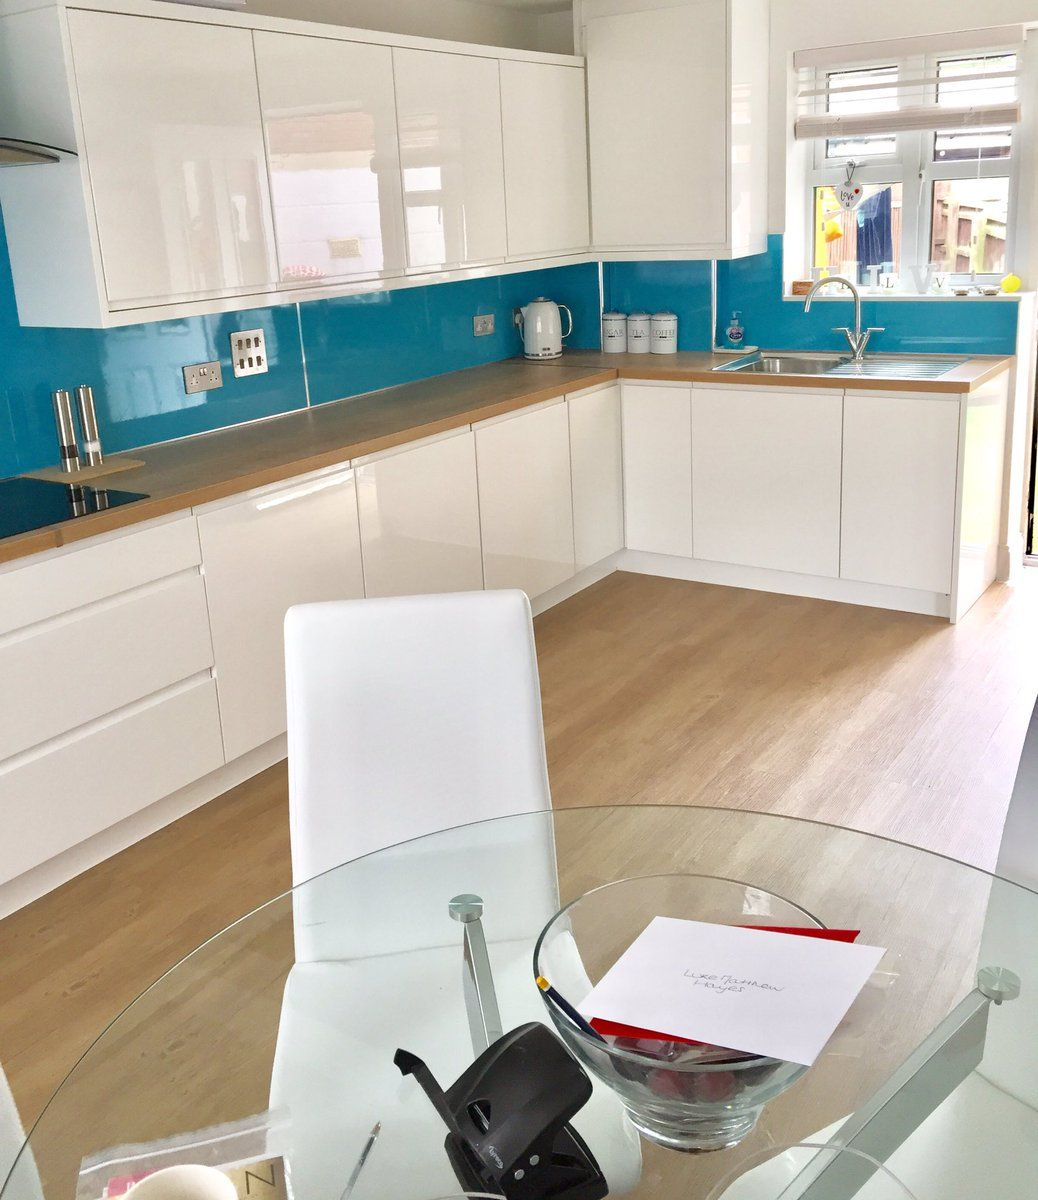 kitchen installation using selkie board 'blue turquoise